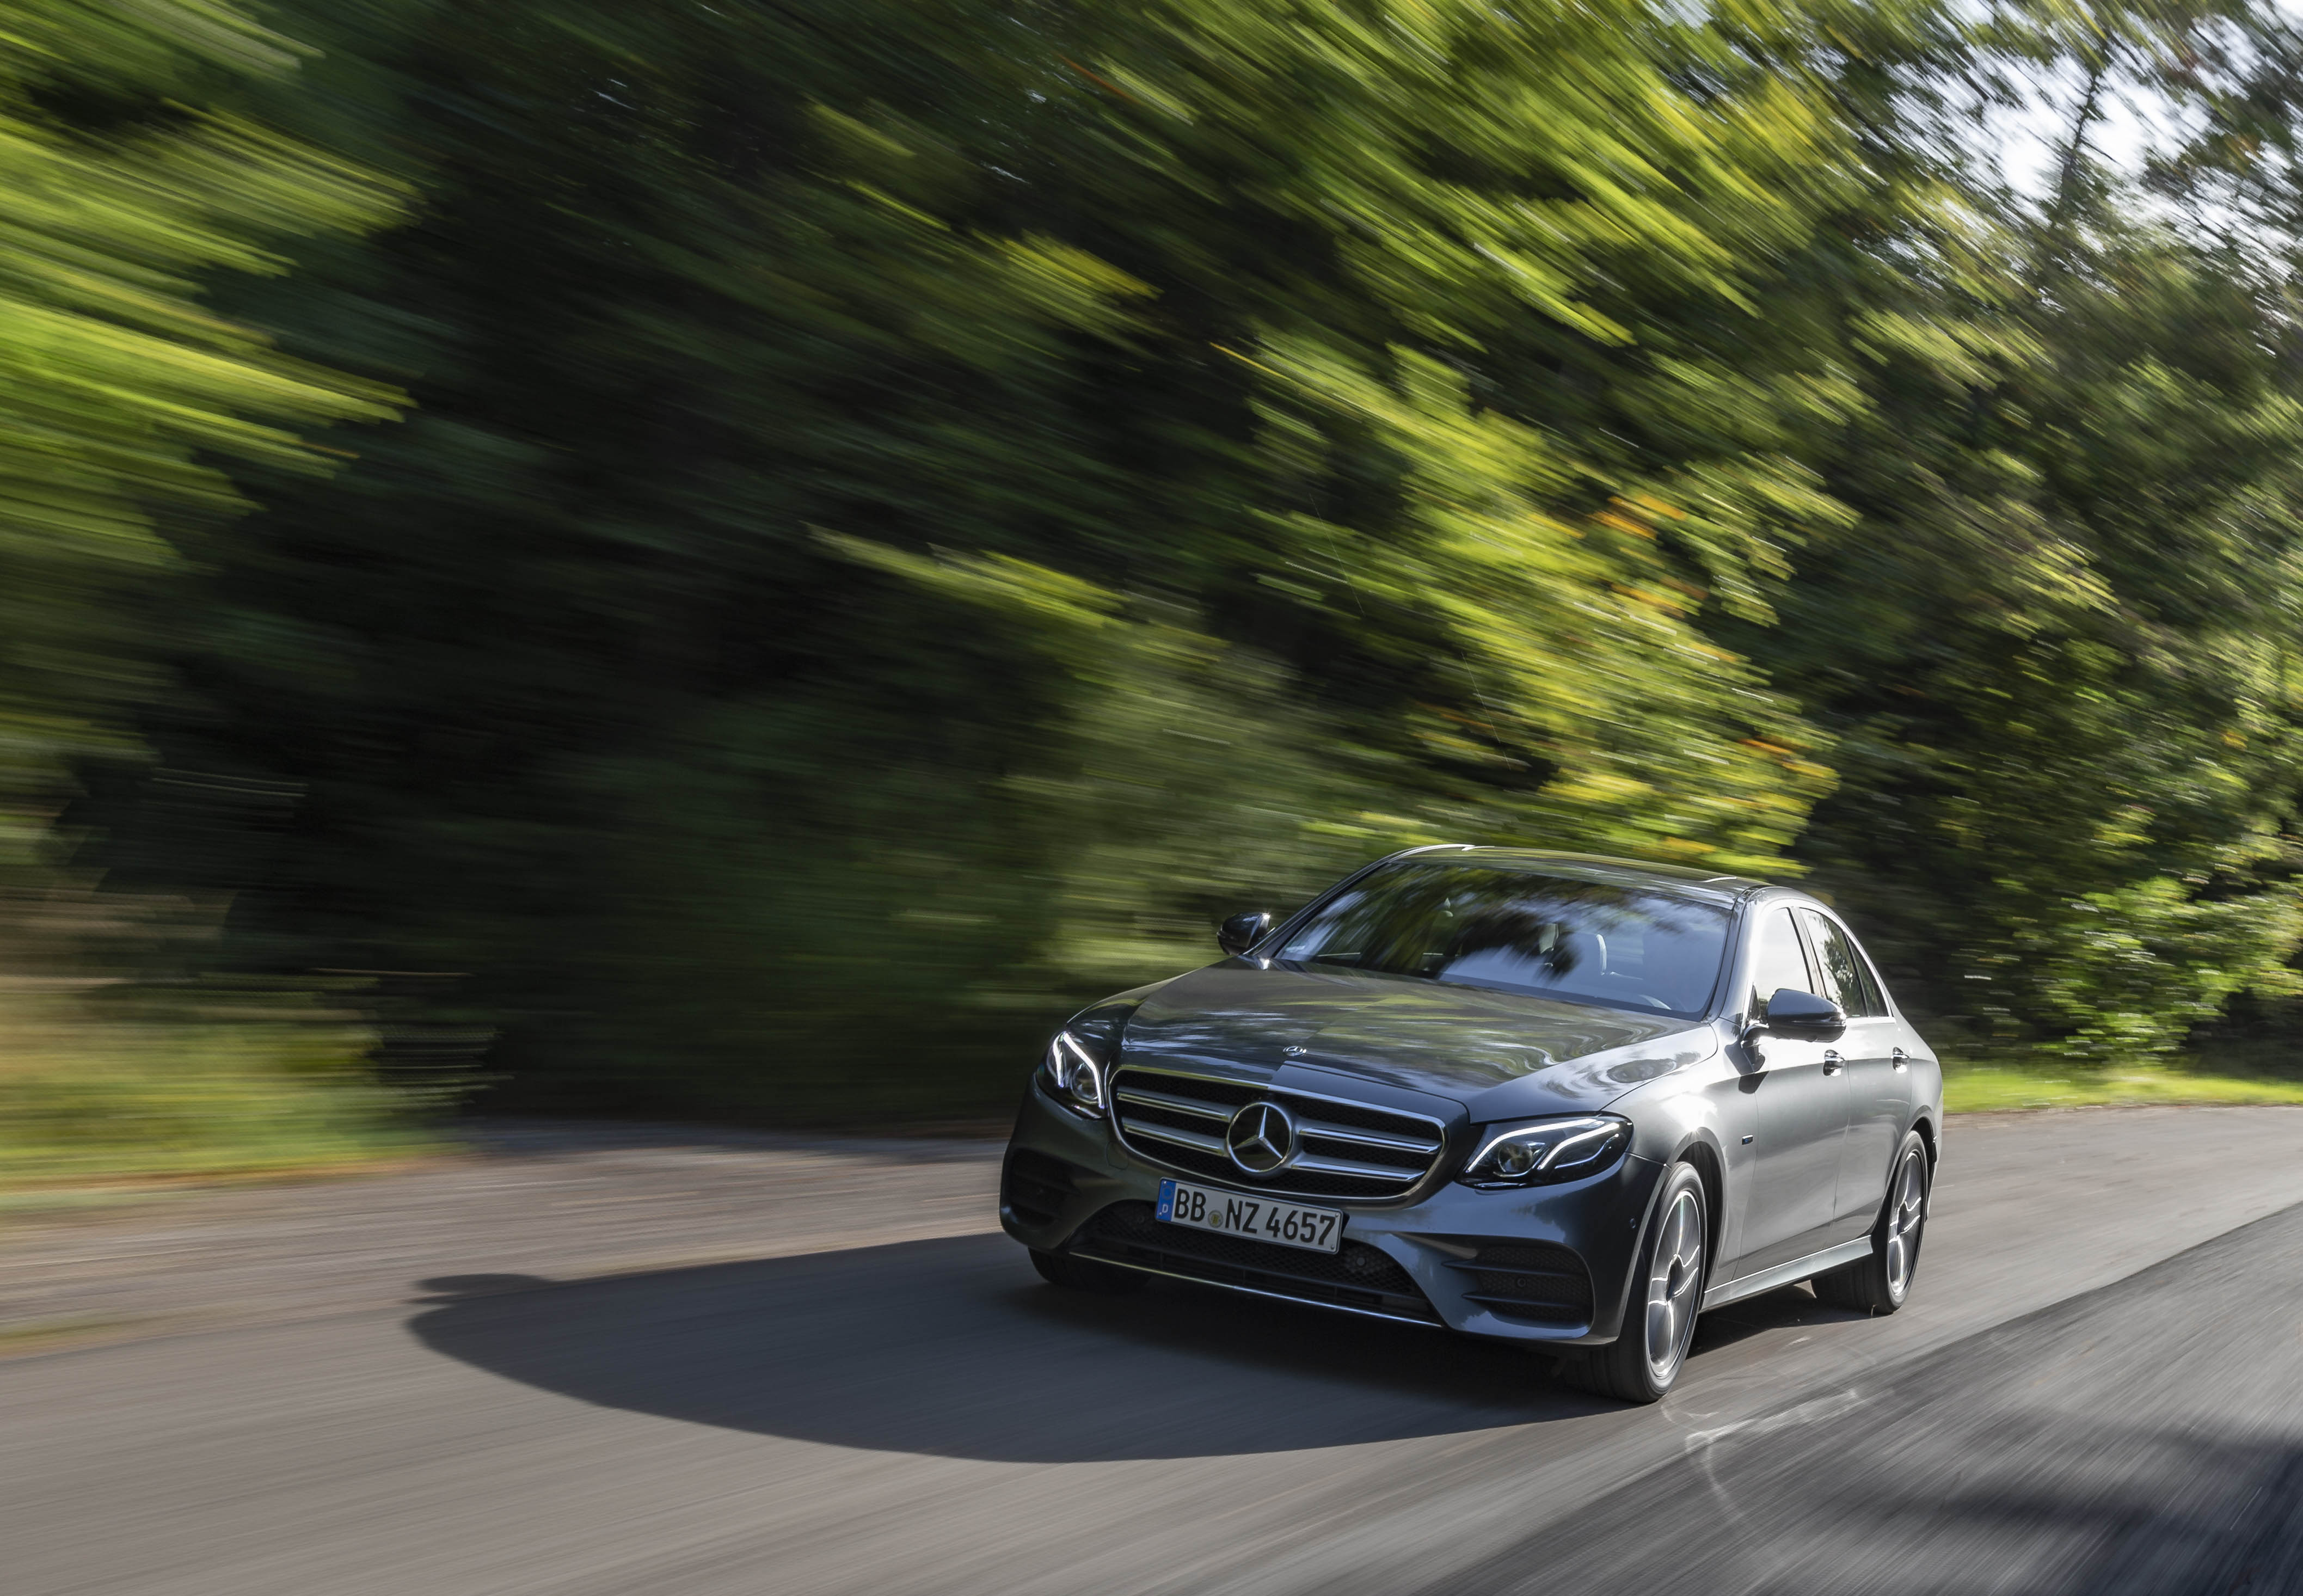 Mercedes E-Class Plug-in Hybrid (W213) mod specifications